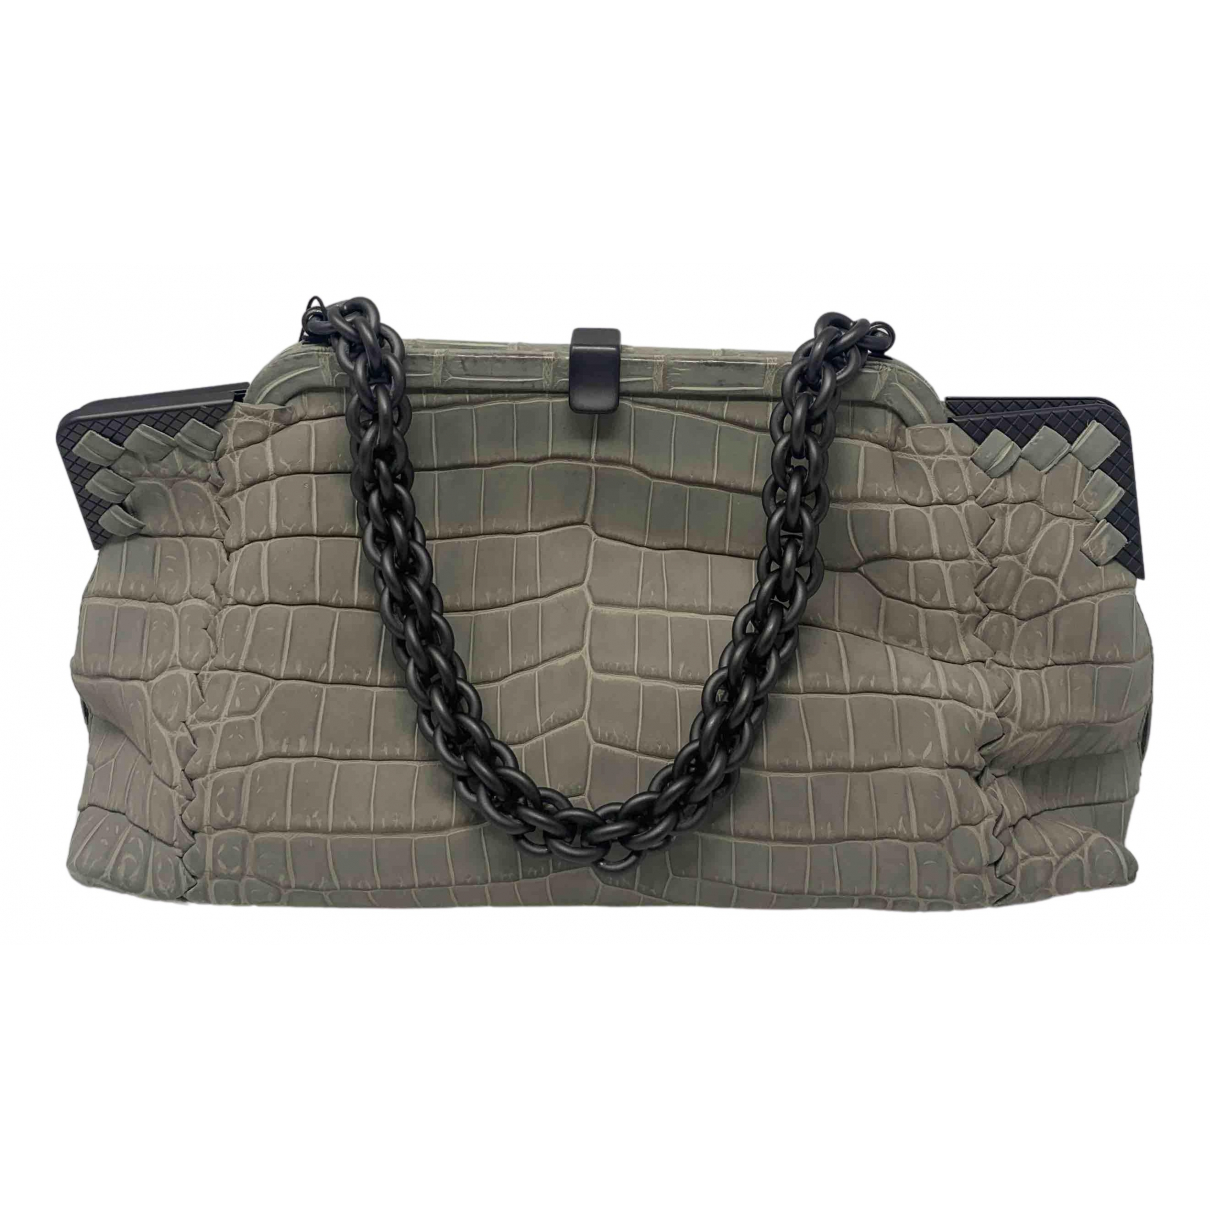 Bottega Veneta \N Grey Crocodile handbag for Women \N